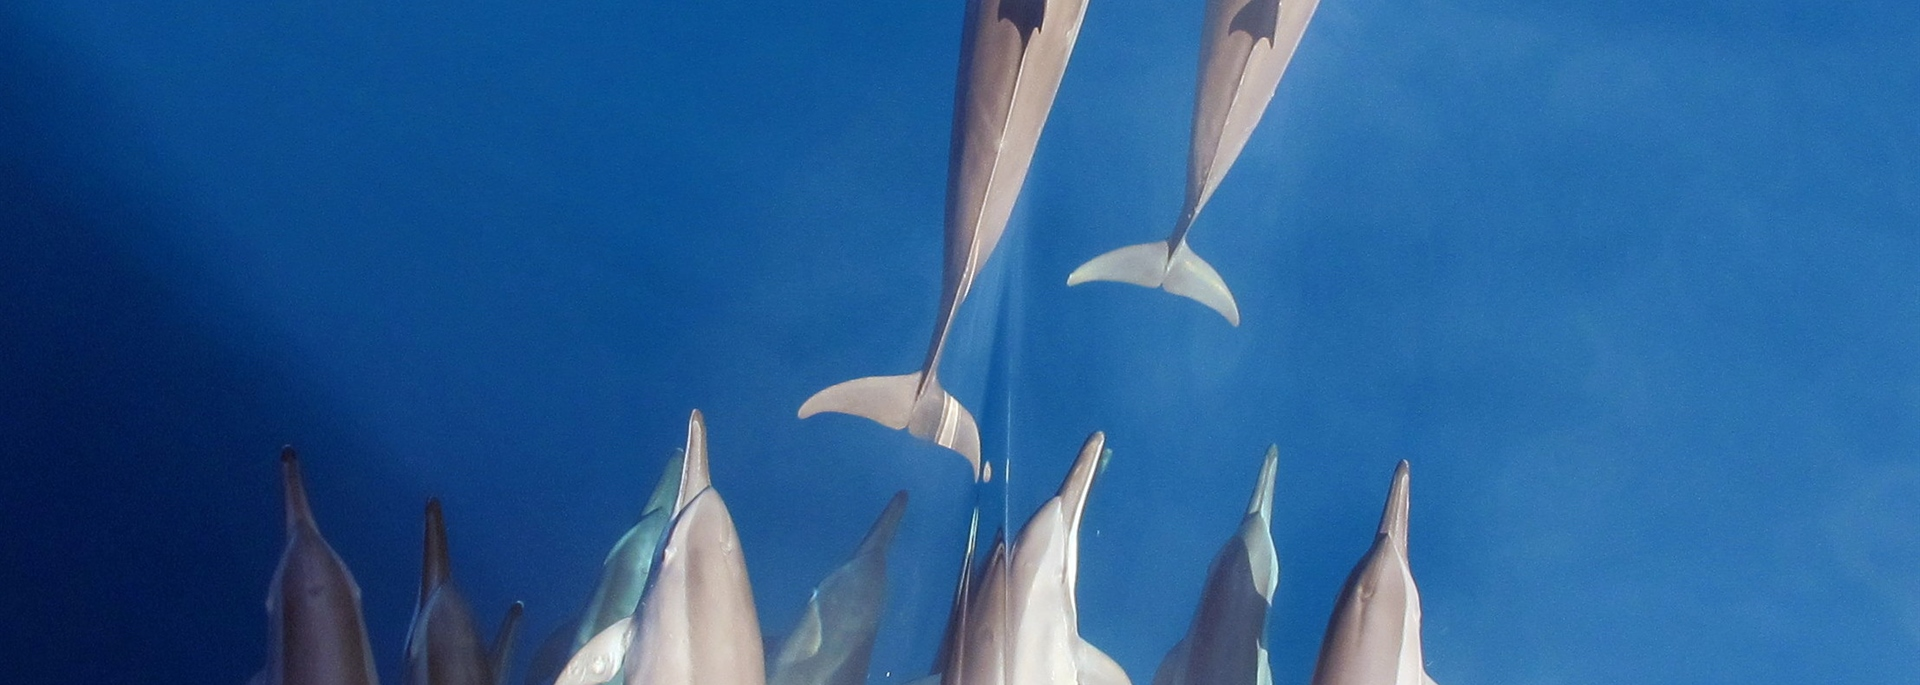 Group of Dolphins